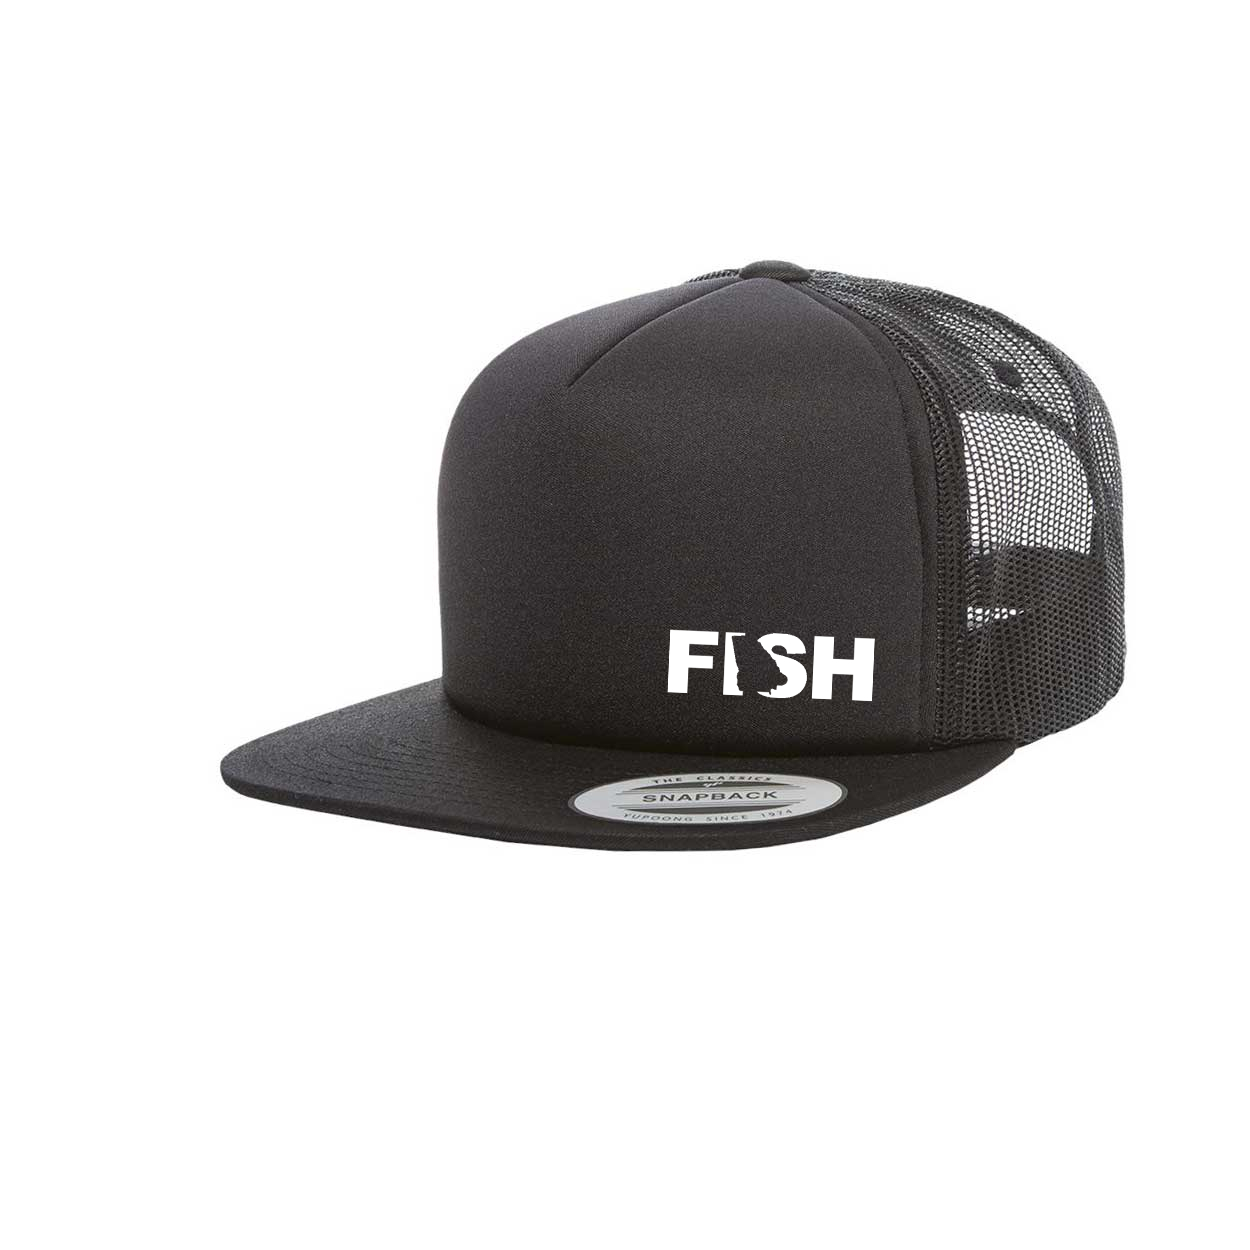 Fish Georgia Night Out Premium Foam Flat Brim Snapback Hat Black (White Logo)